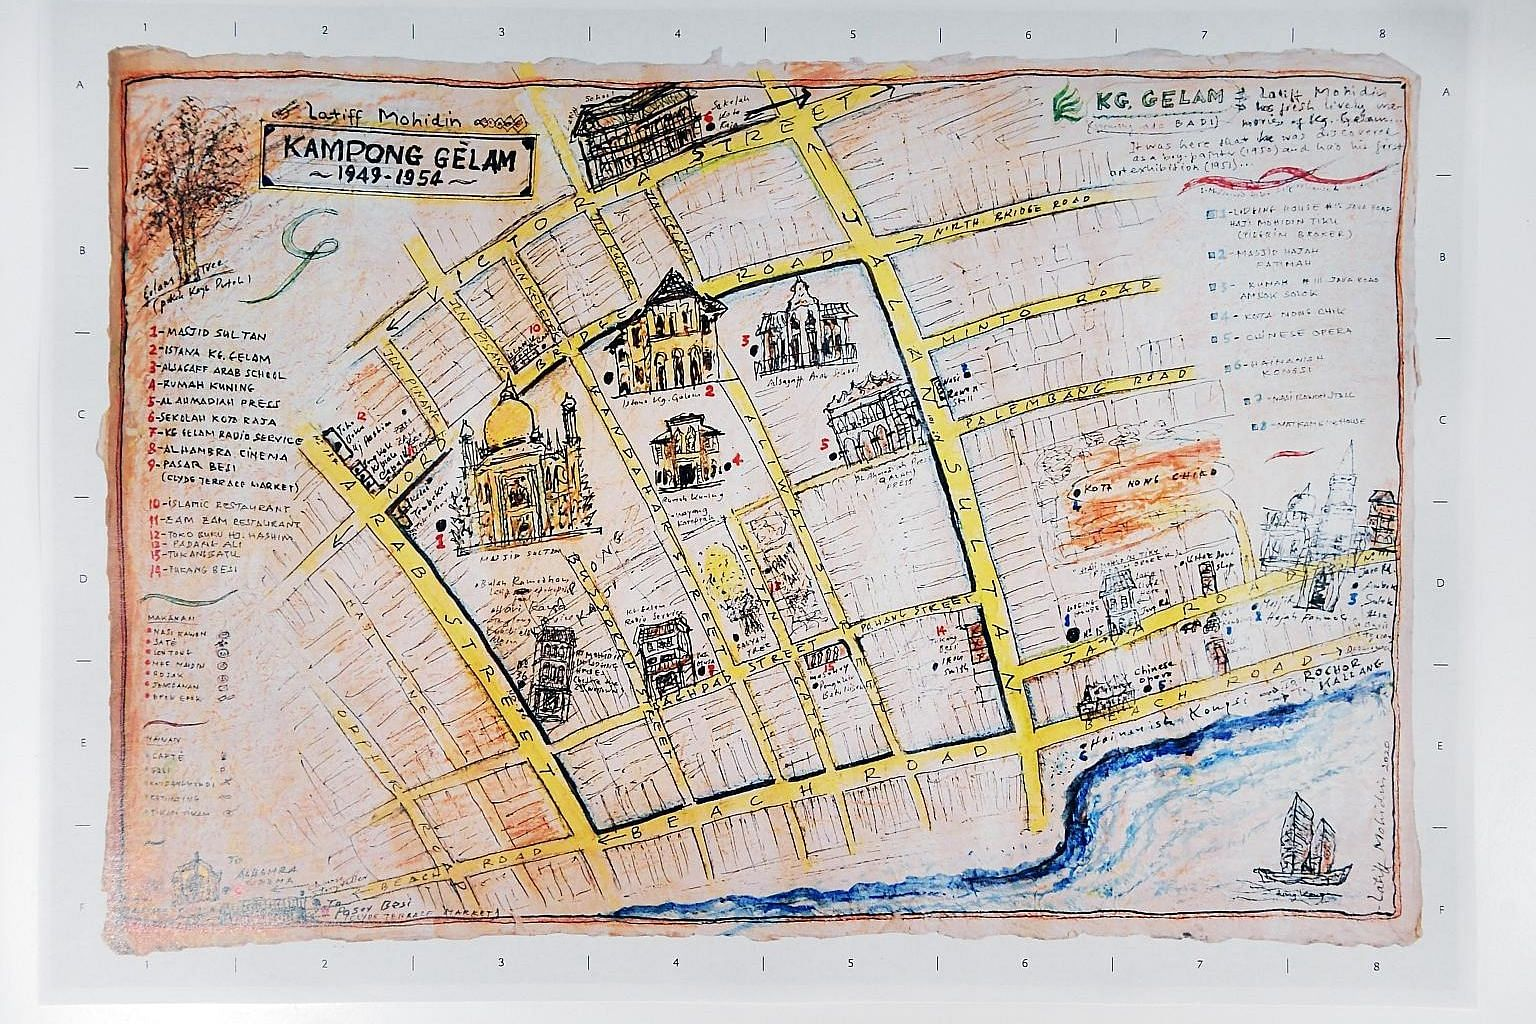 This hand-drawn map of the Kampong Gelam neighbourhood, featured in Latiff Mohidin: Pago Pago, is a detailed depiction of the Malaysian artist's memories of the neighbourhood in Singapore where he grew up, complete with annotations for his favourite